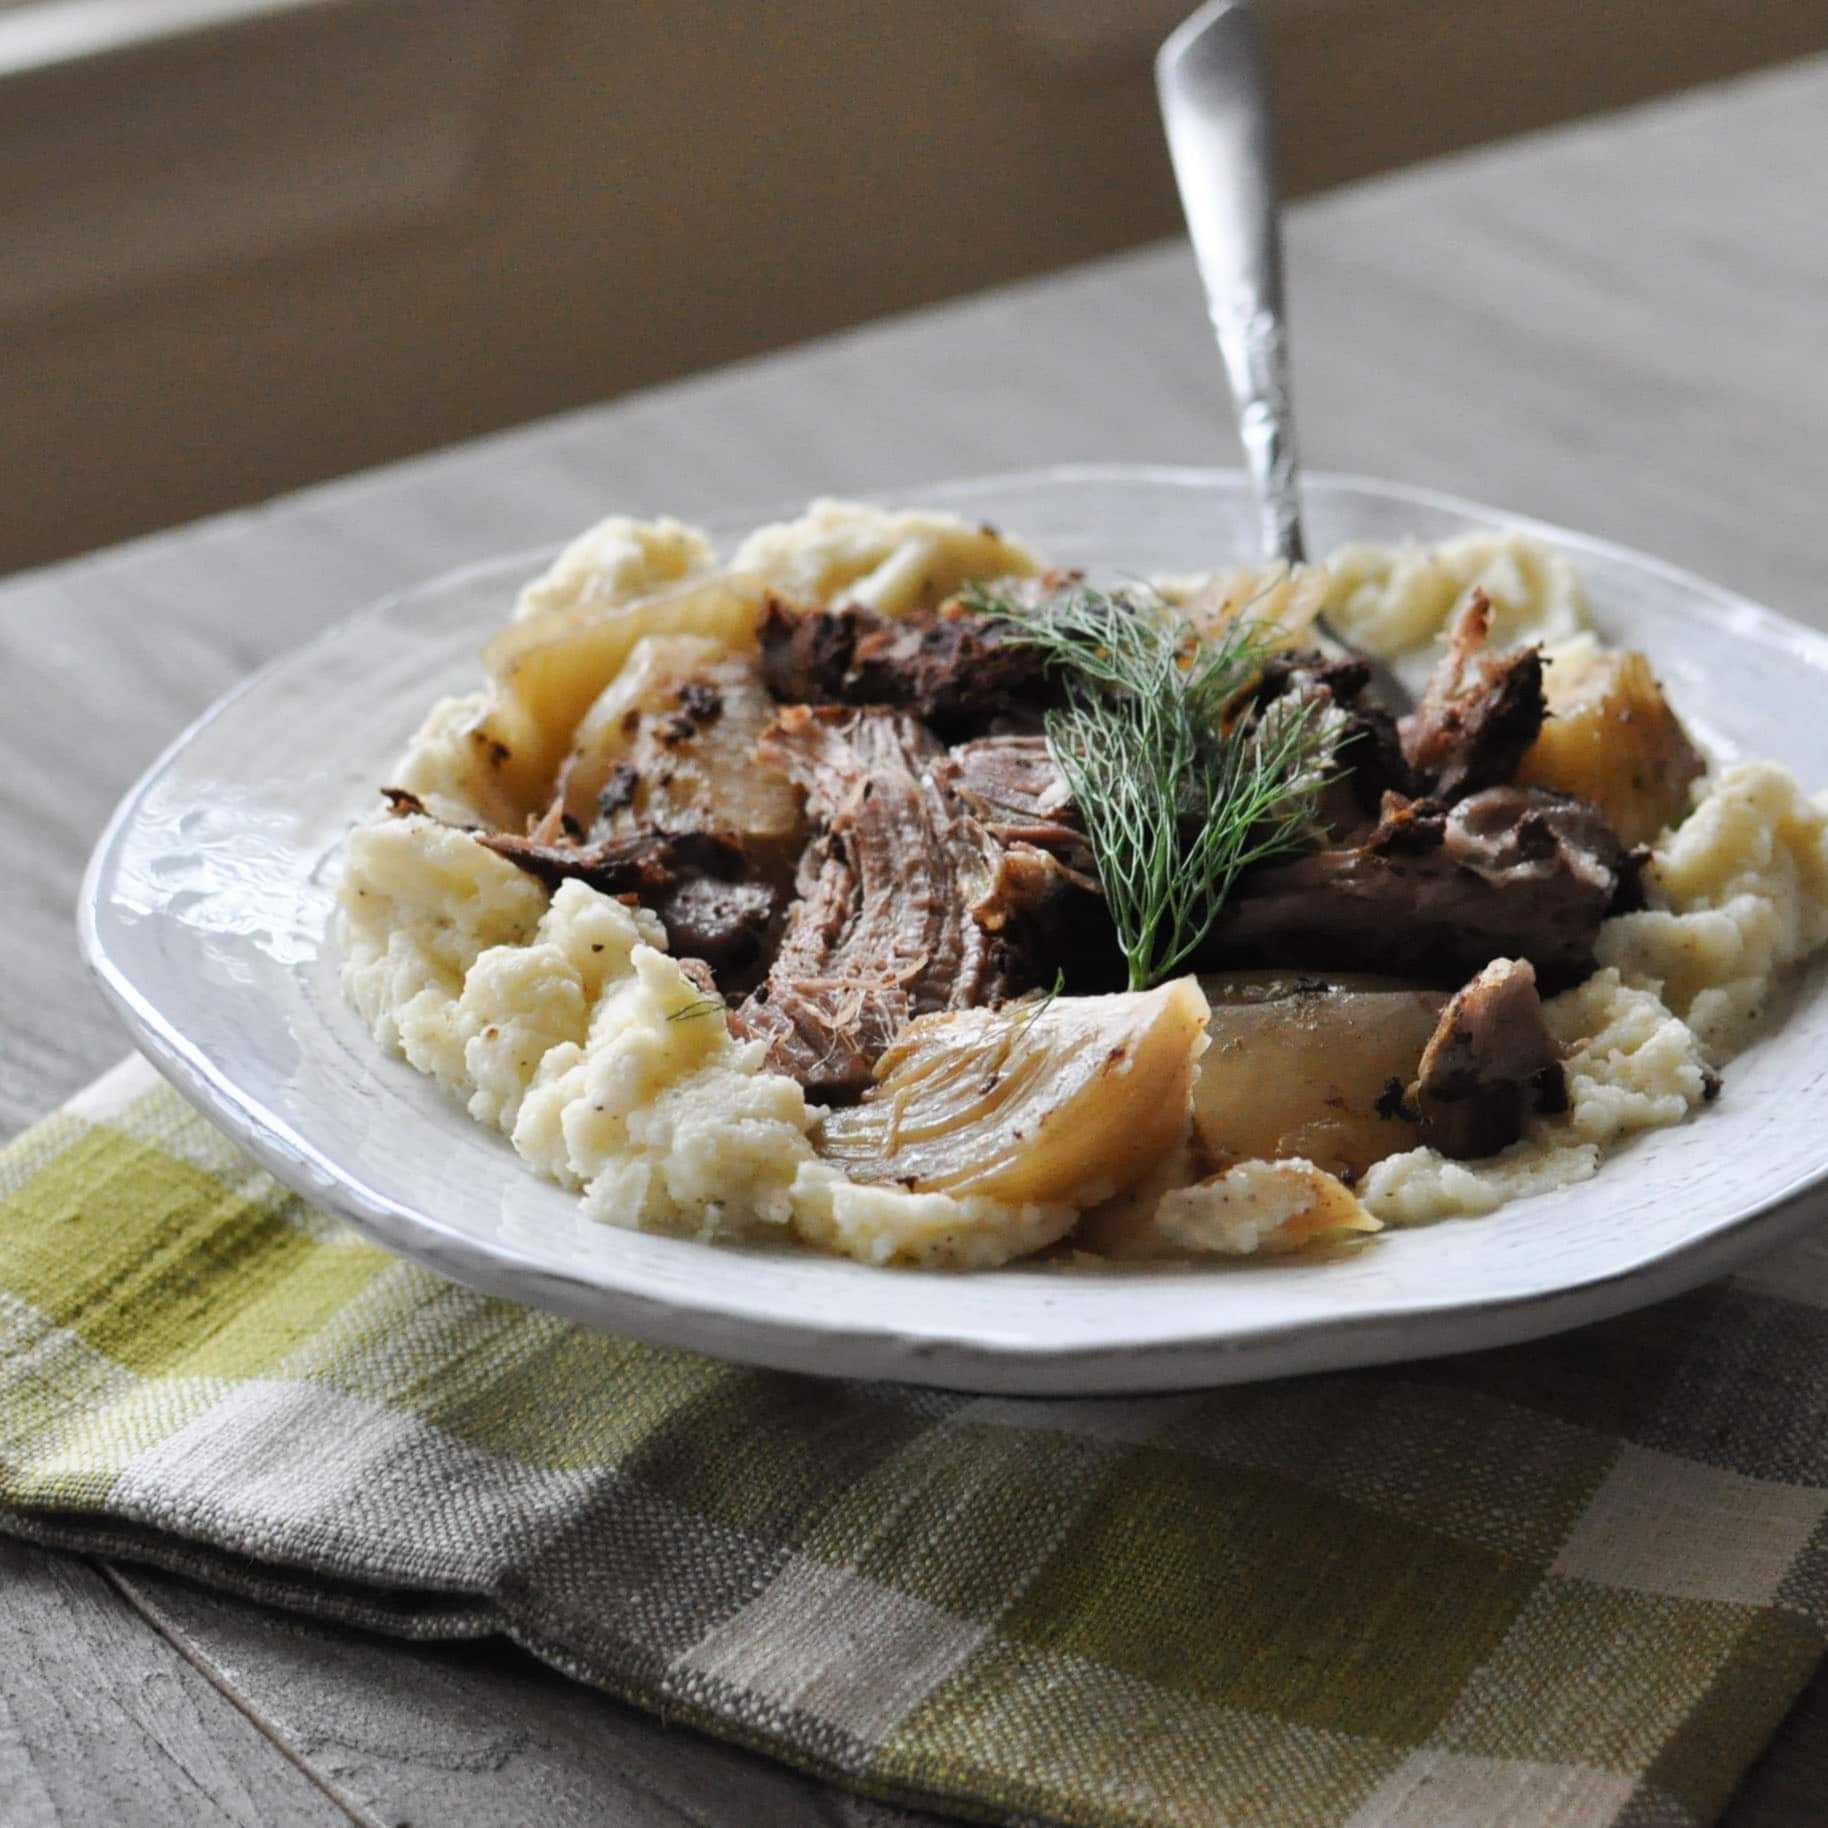 Cinnamon & Fennel Braised Pork